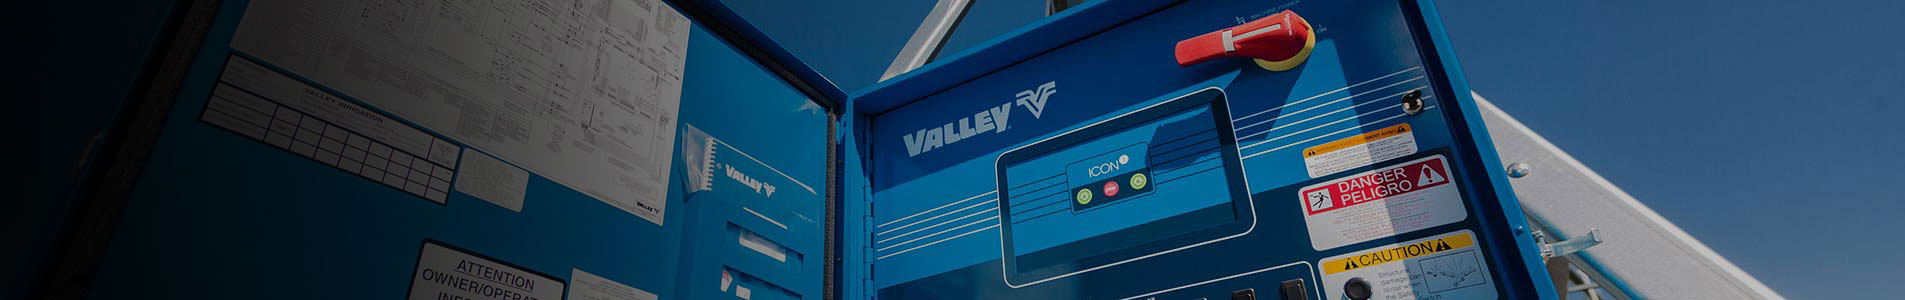 valley icon1 smart panel - irrigation control panel solution